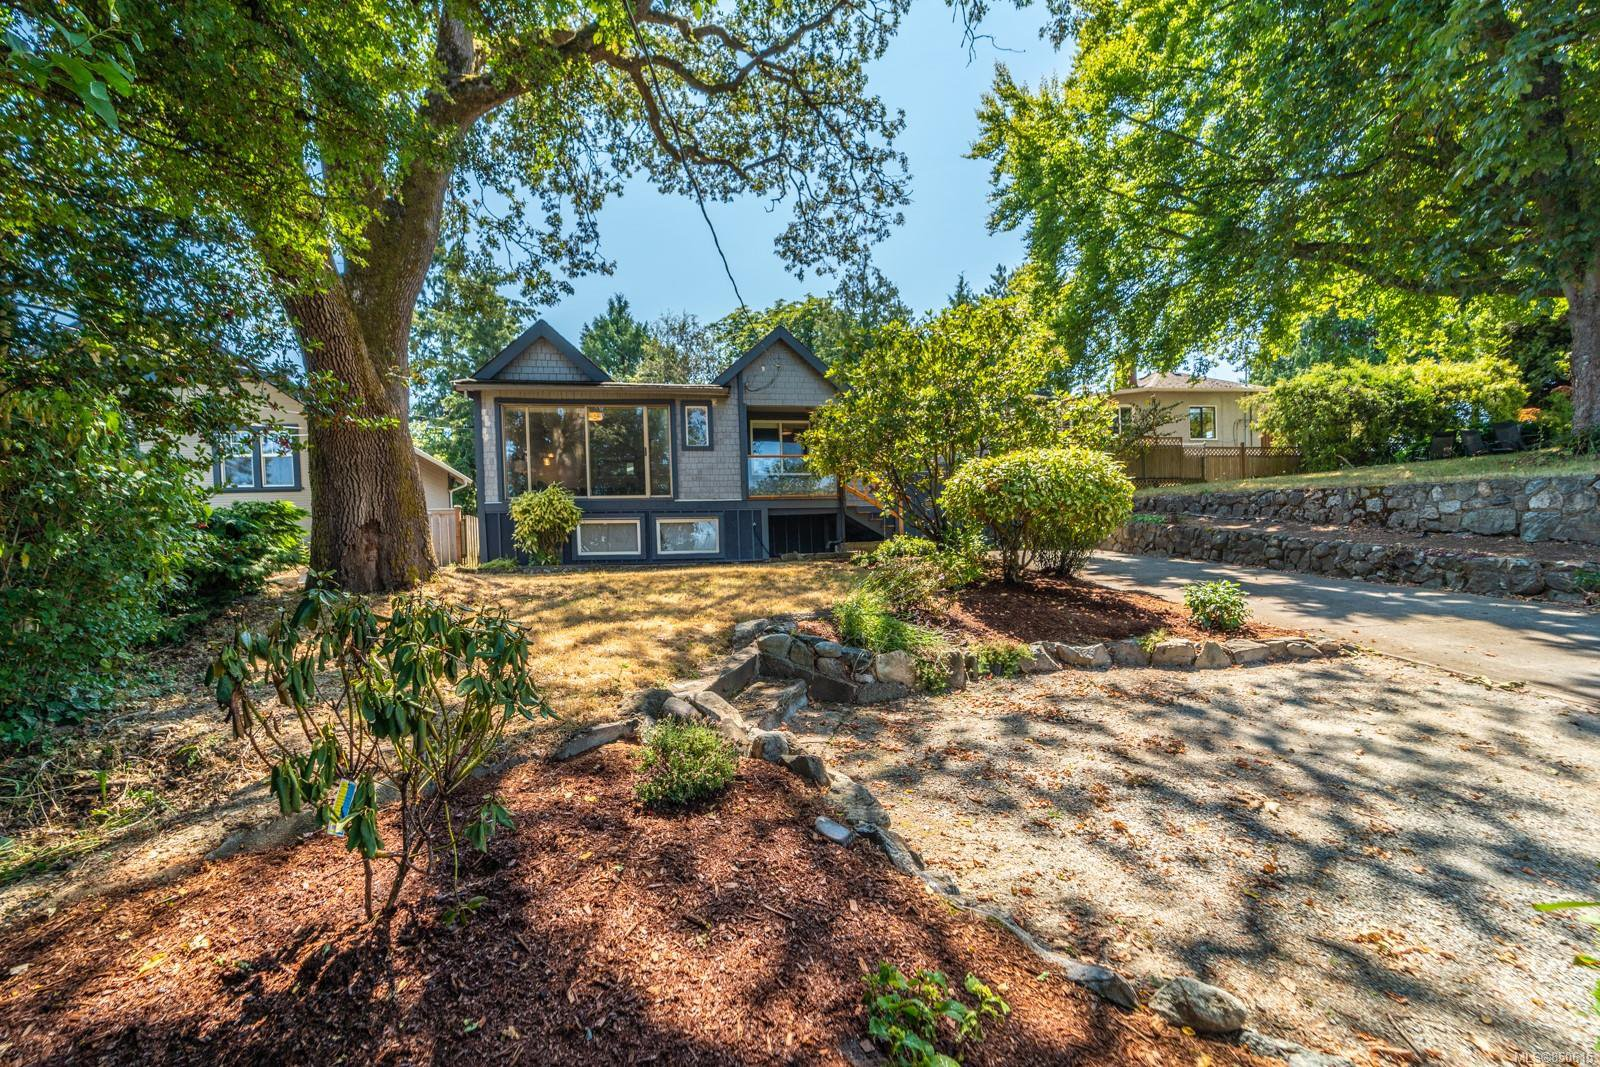 Main Photo: 613 Kent Rd in : SW Tillicum Single Family Detached for sale (Saanich West)  : MLS®# 850615